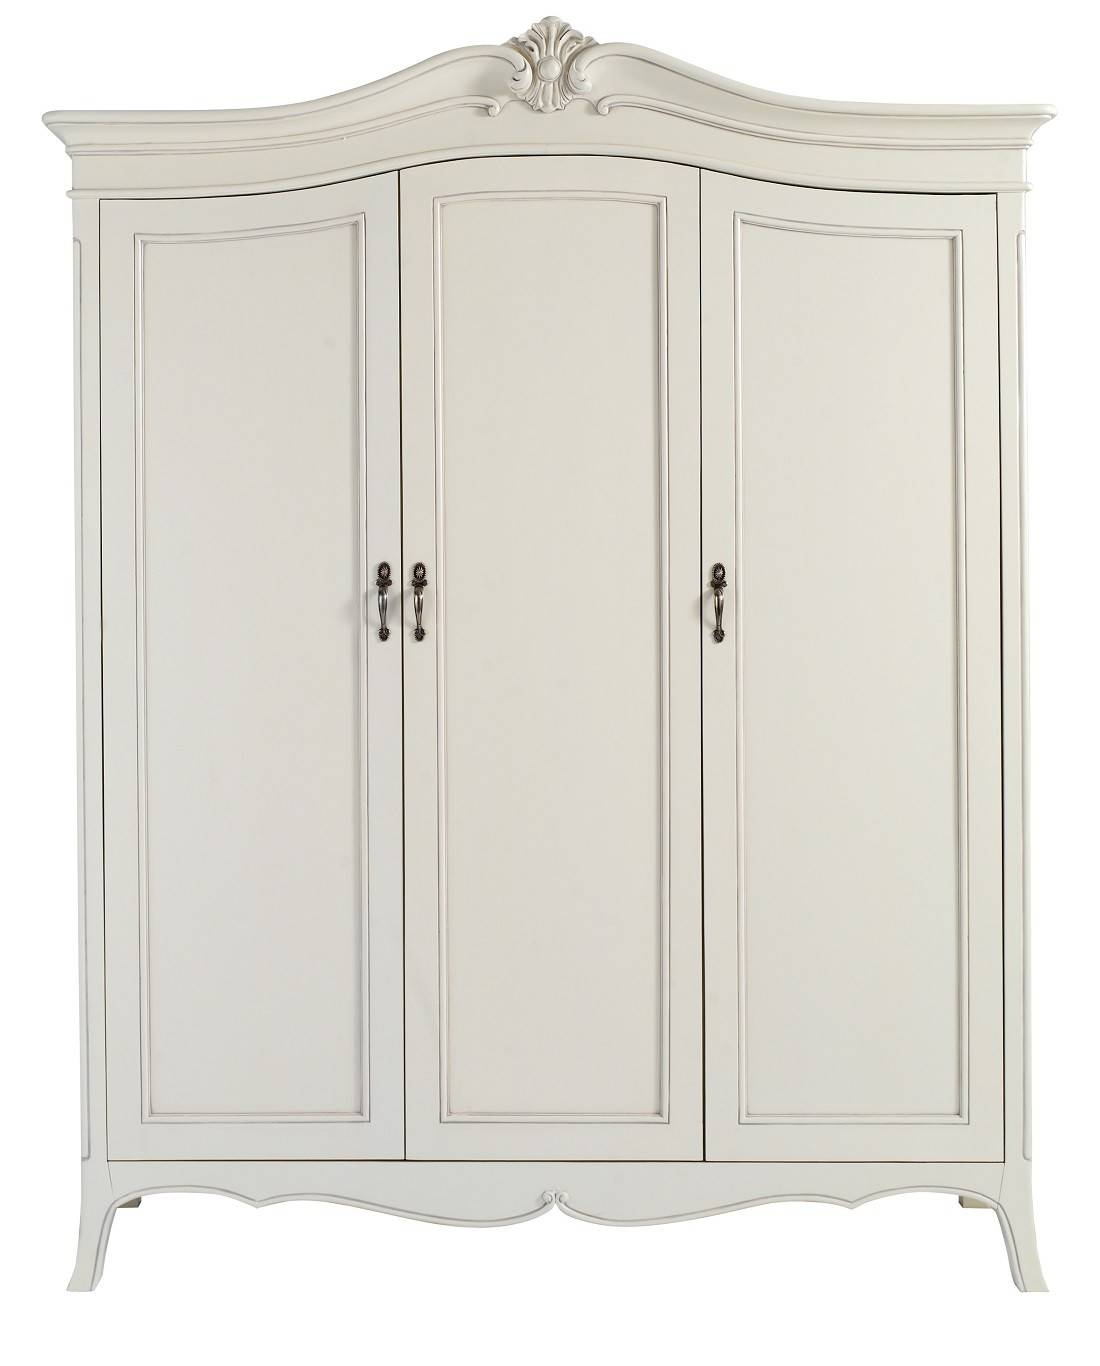 Louis French Ivory Painted 3 Door Triple Wardrobe | Oak Furniture Uk in French Wardrobes (Image 11 of 15)